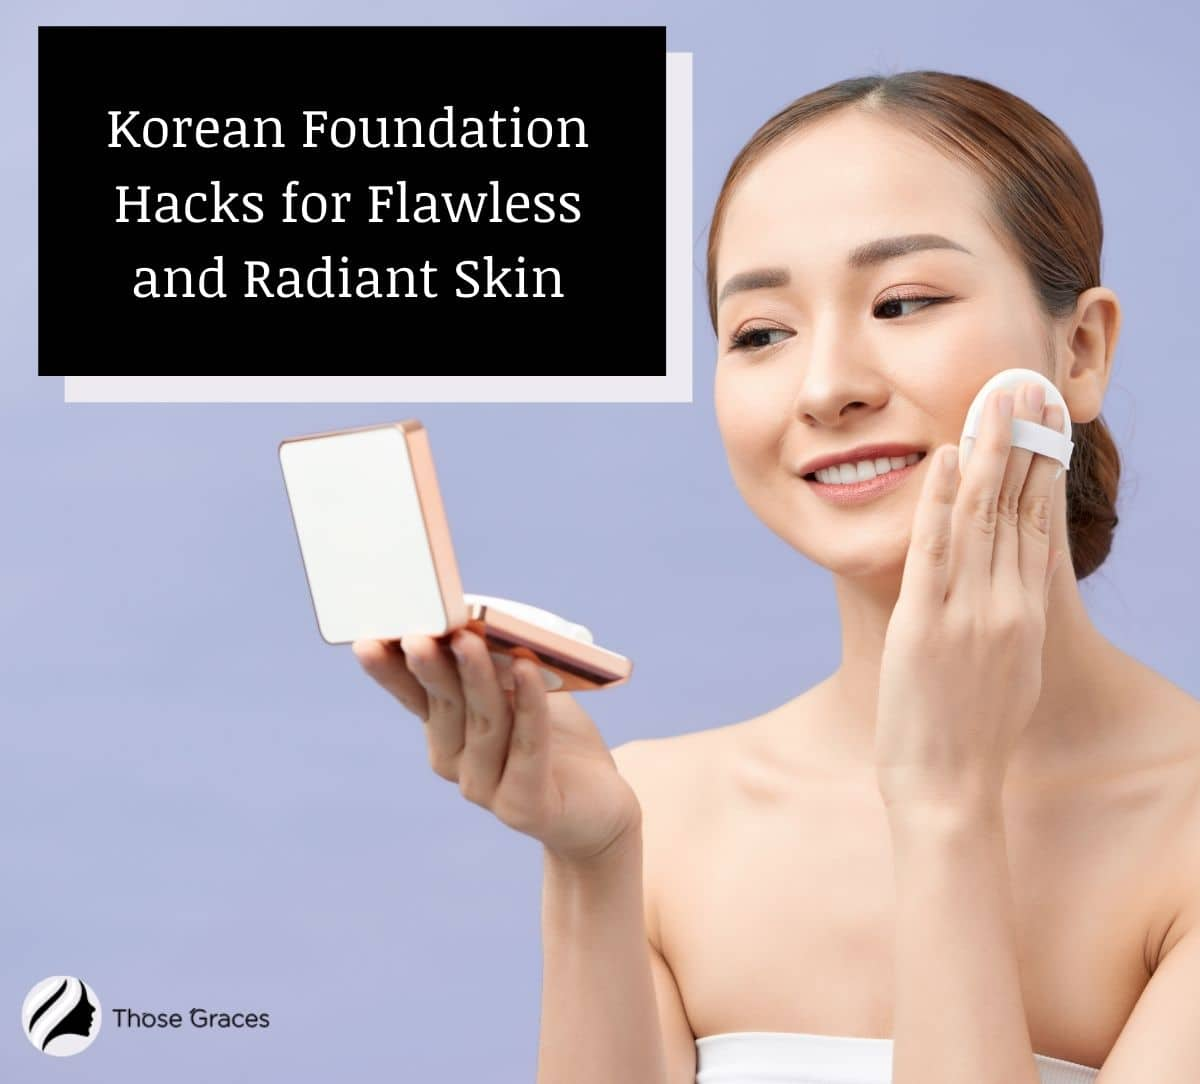 a pretty lady showing how do Koreans apply foundation